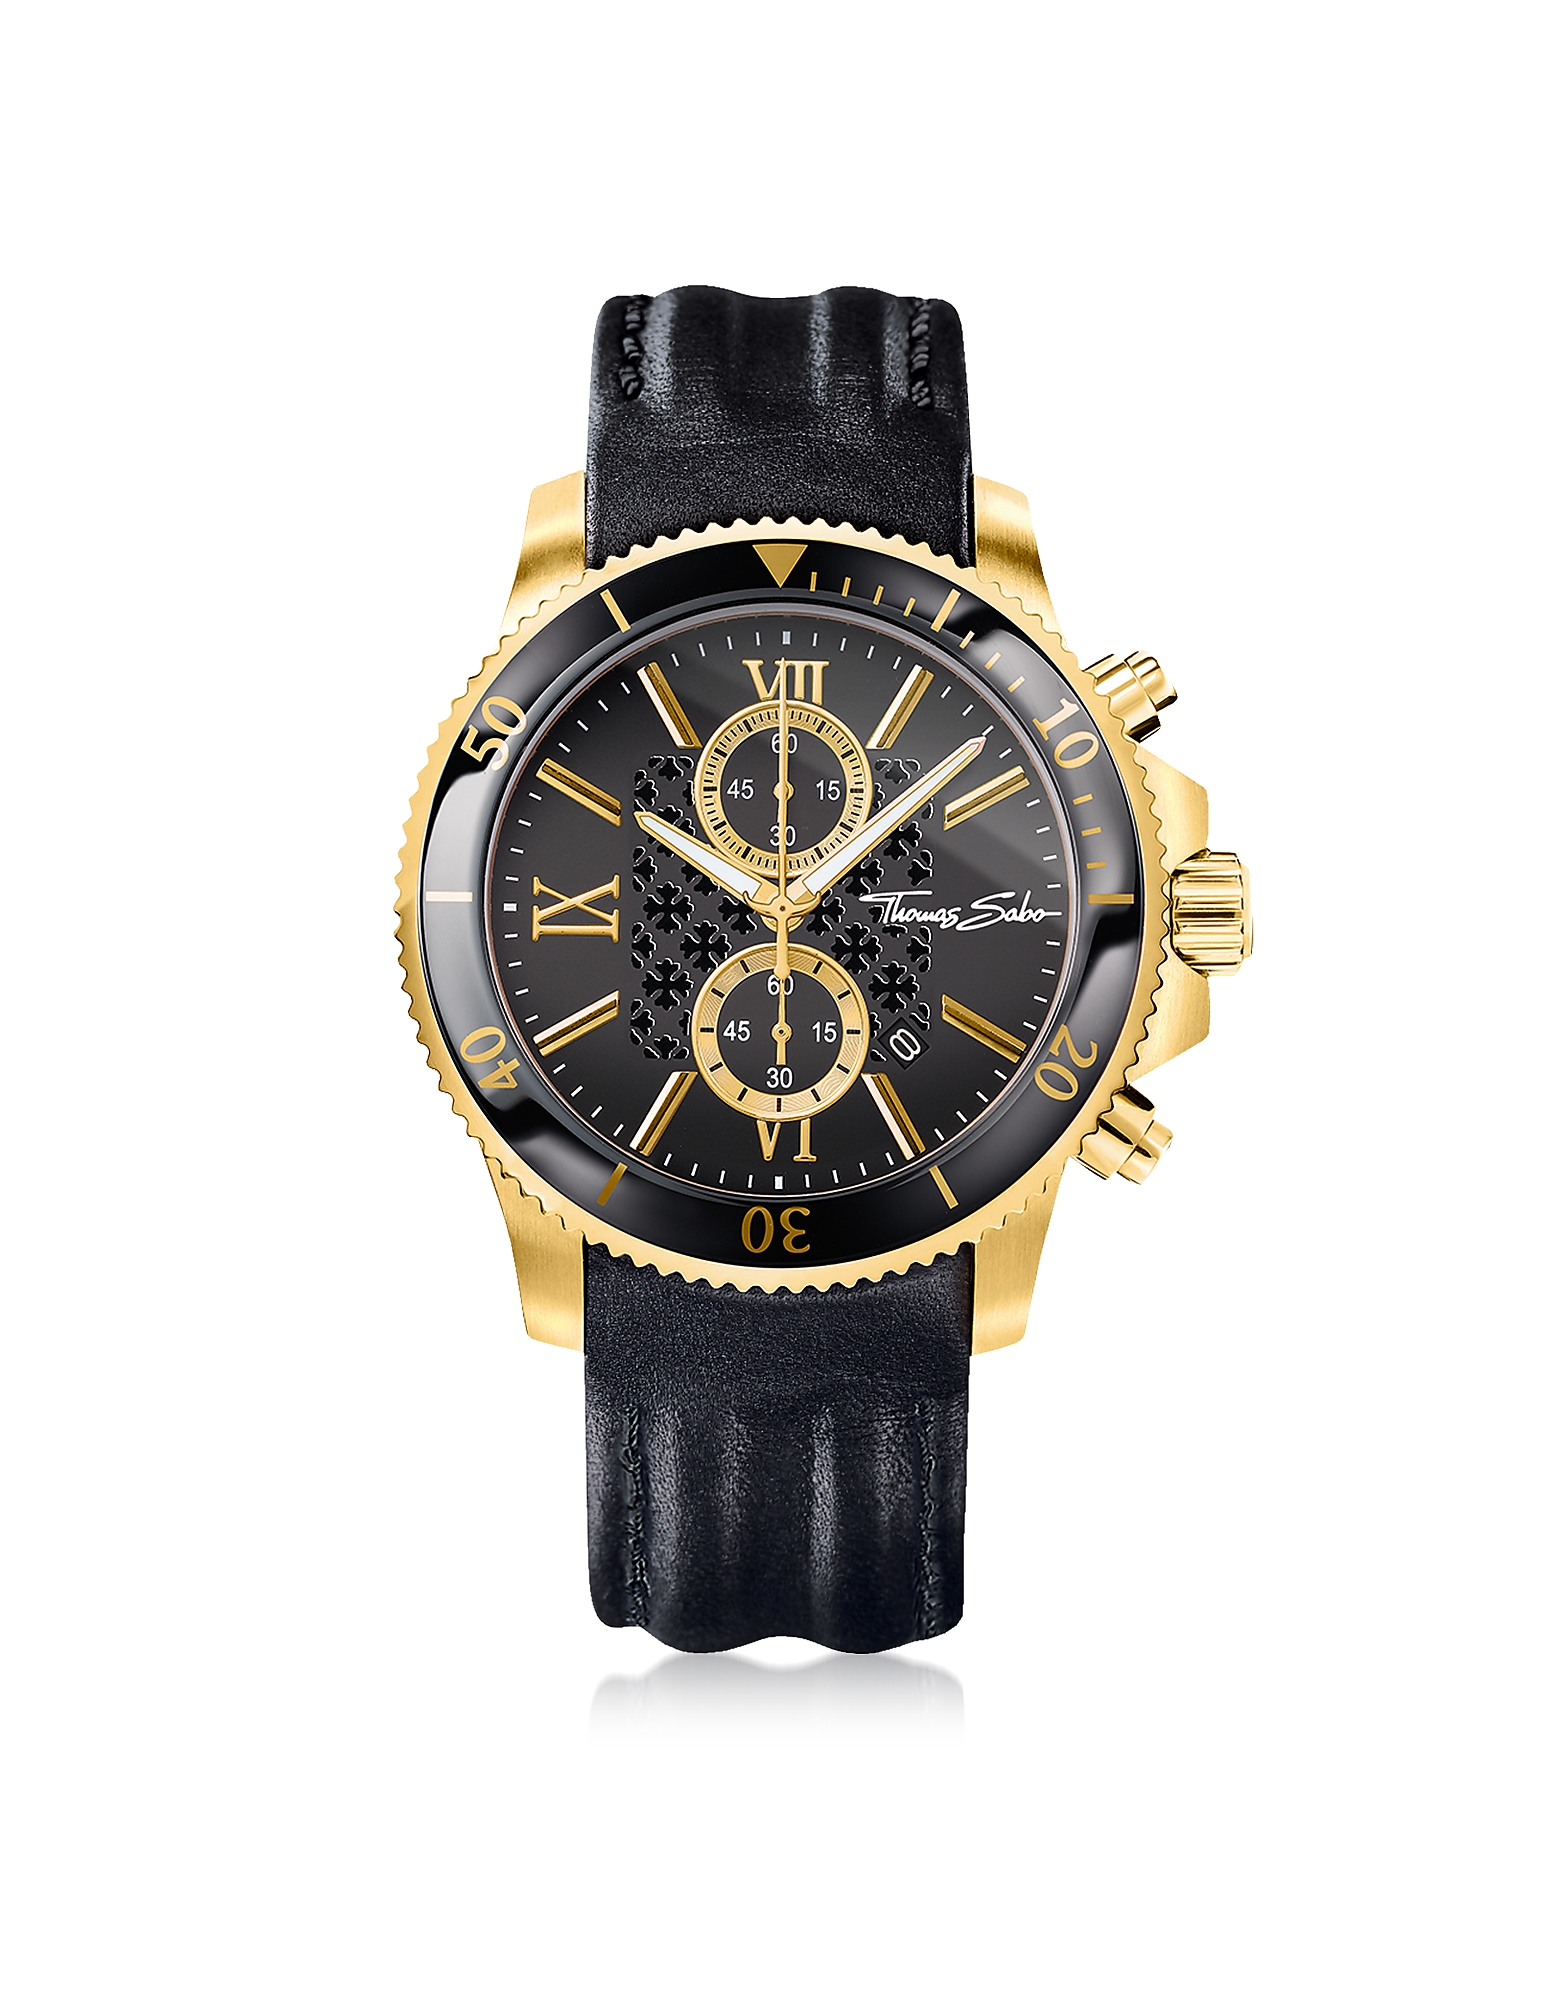 Thomas Sabo Men's Watches, Rebel Race Gold Stainless Steel Men's Chronograph Watch w/Black Leather S